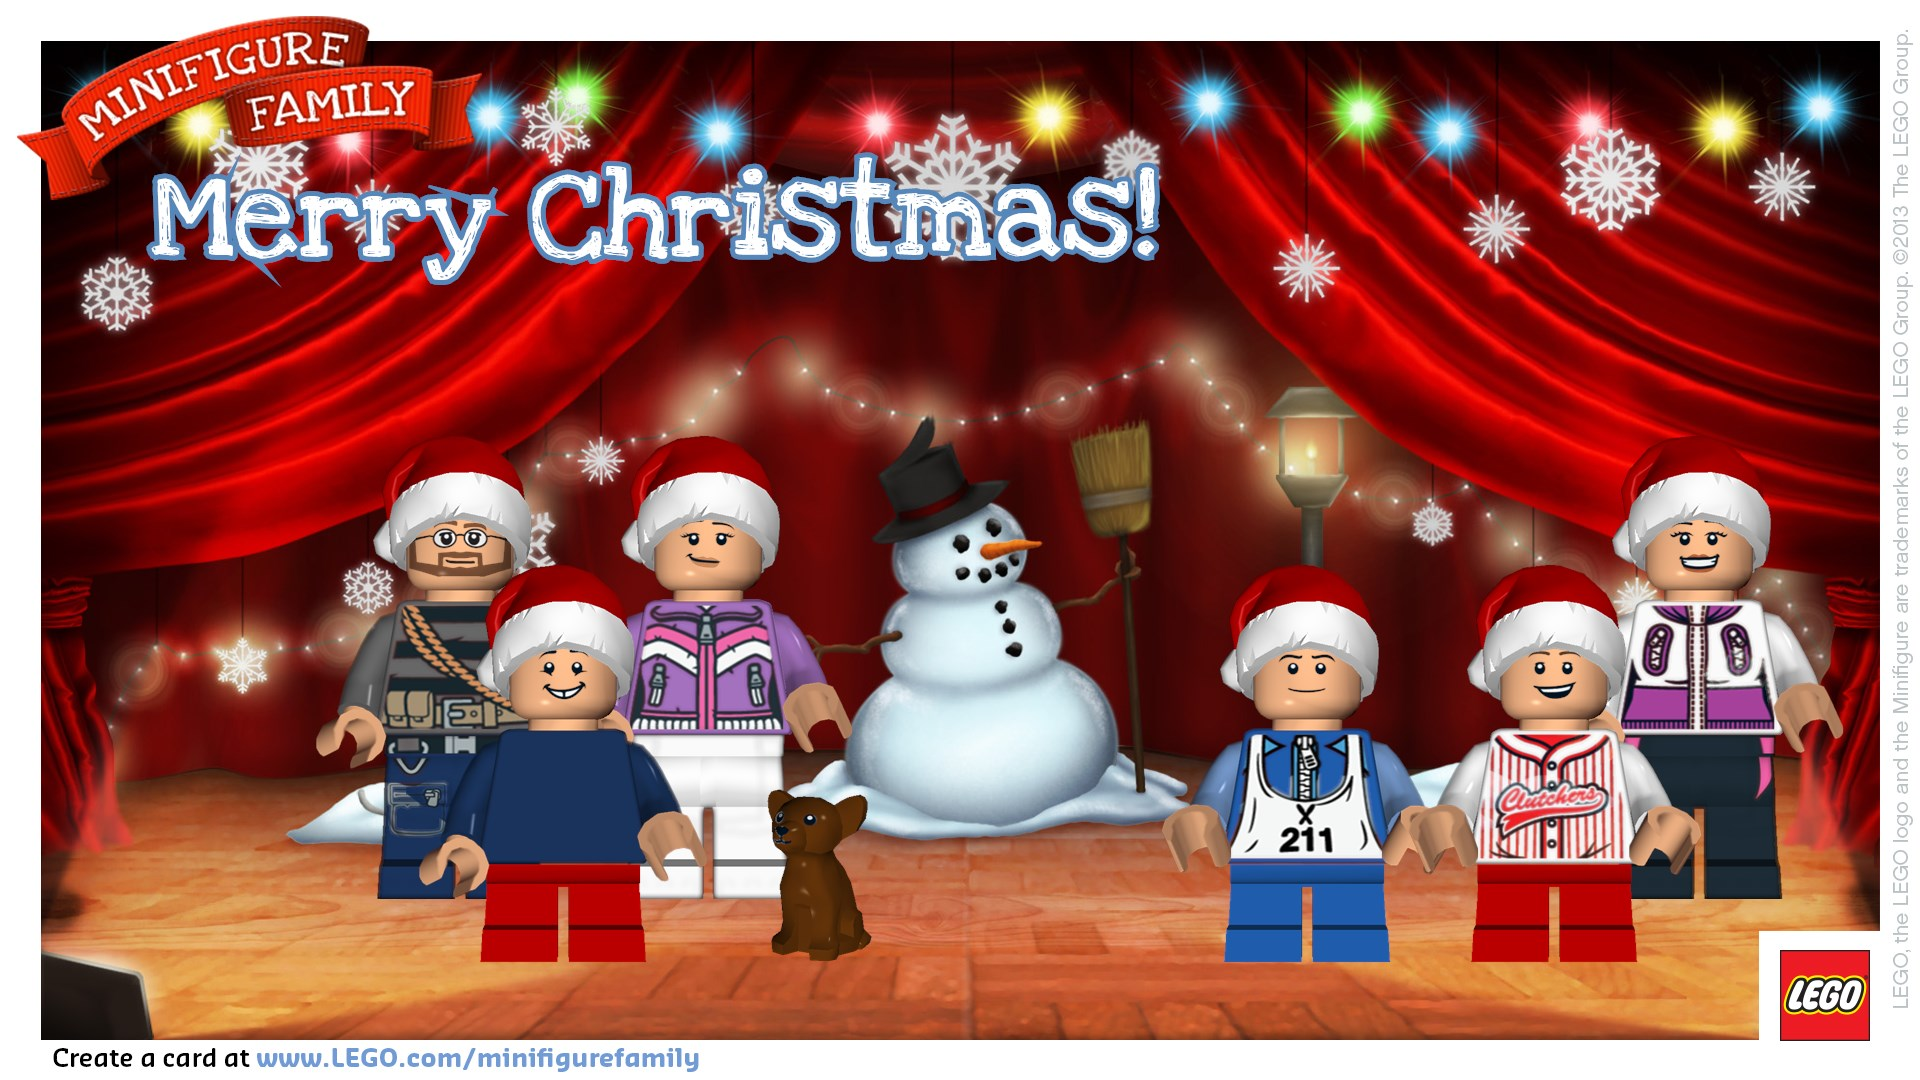 Personalized LEGO Minifigure Christmas Card